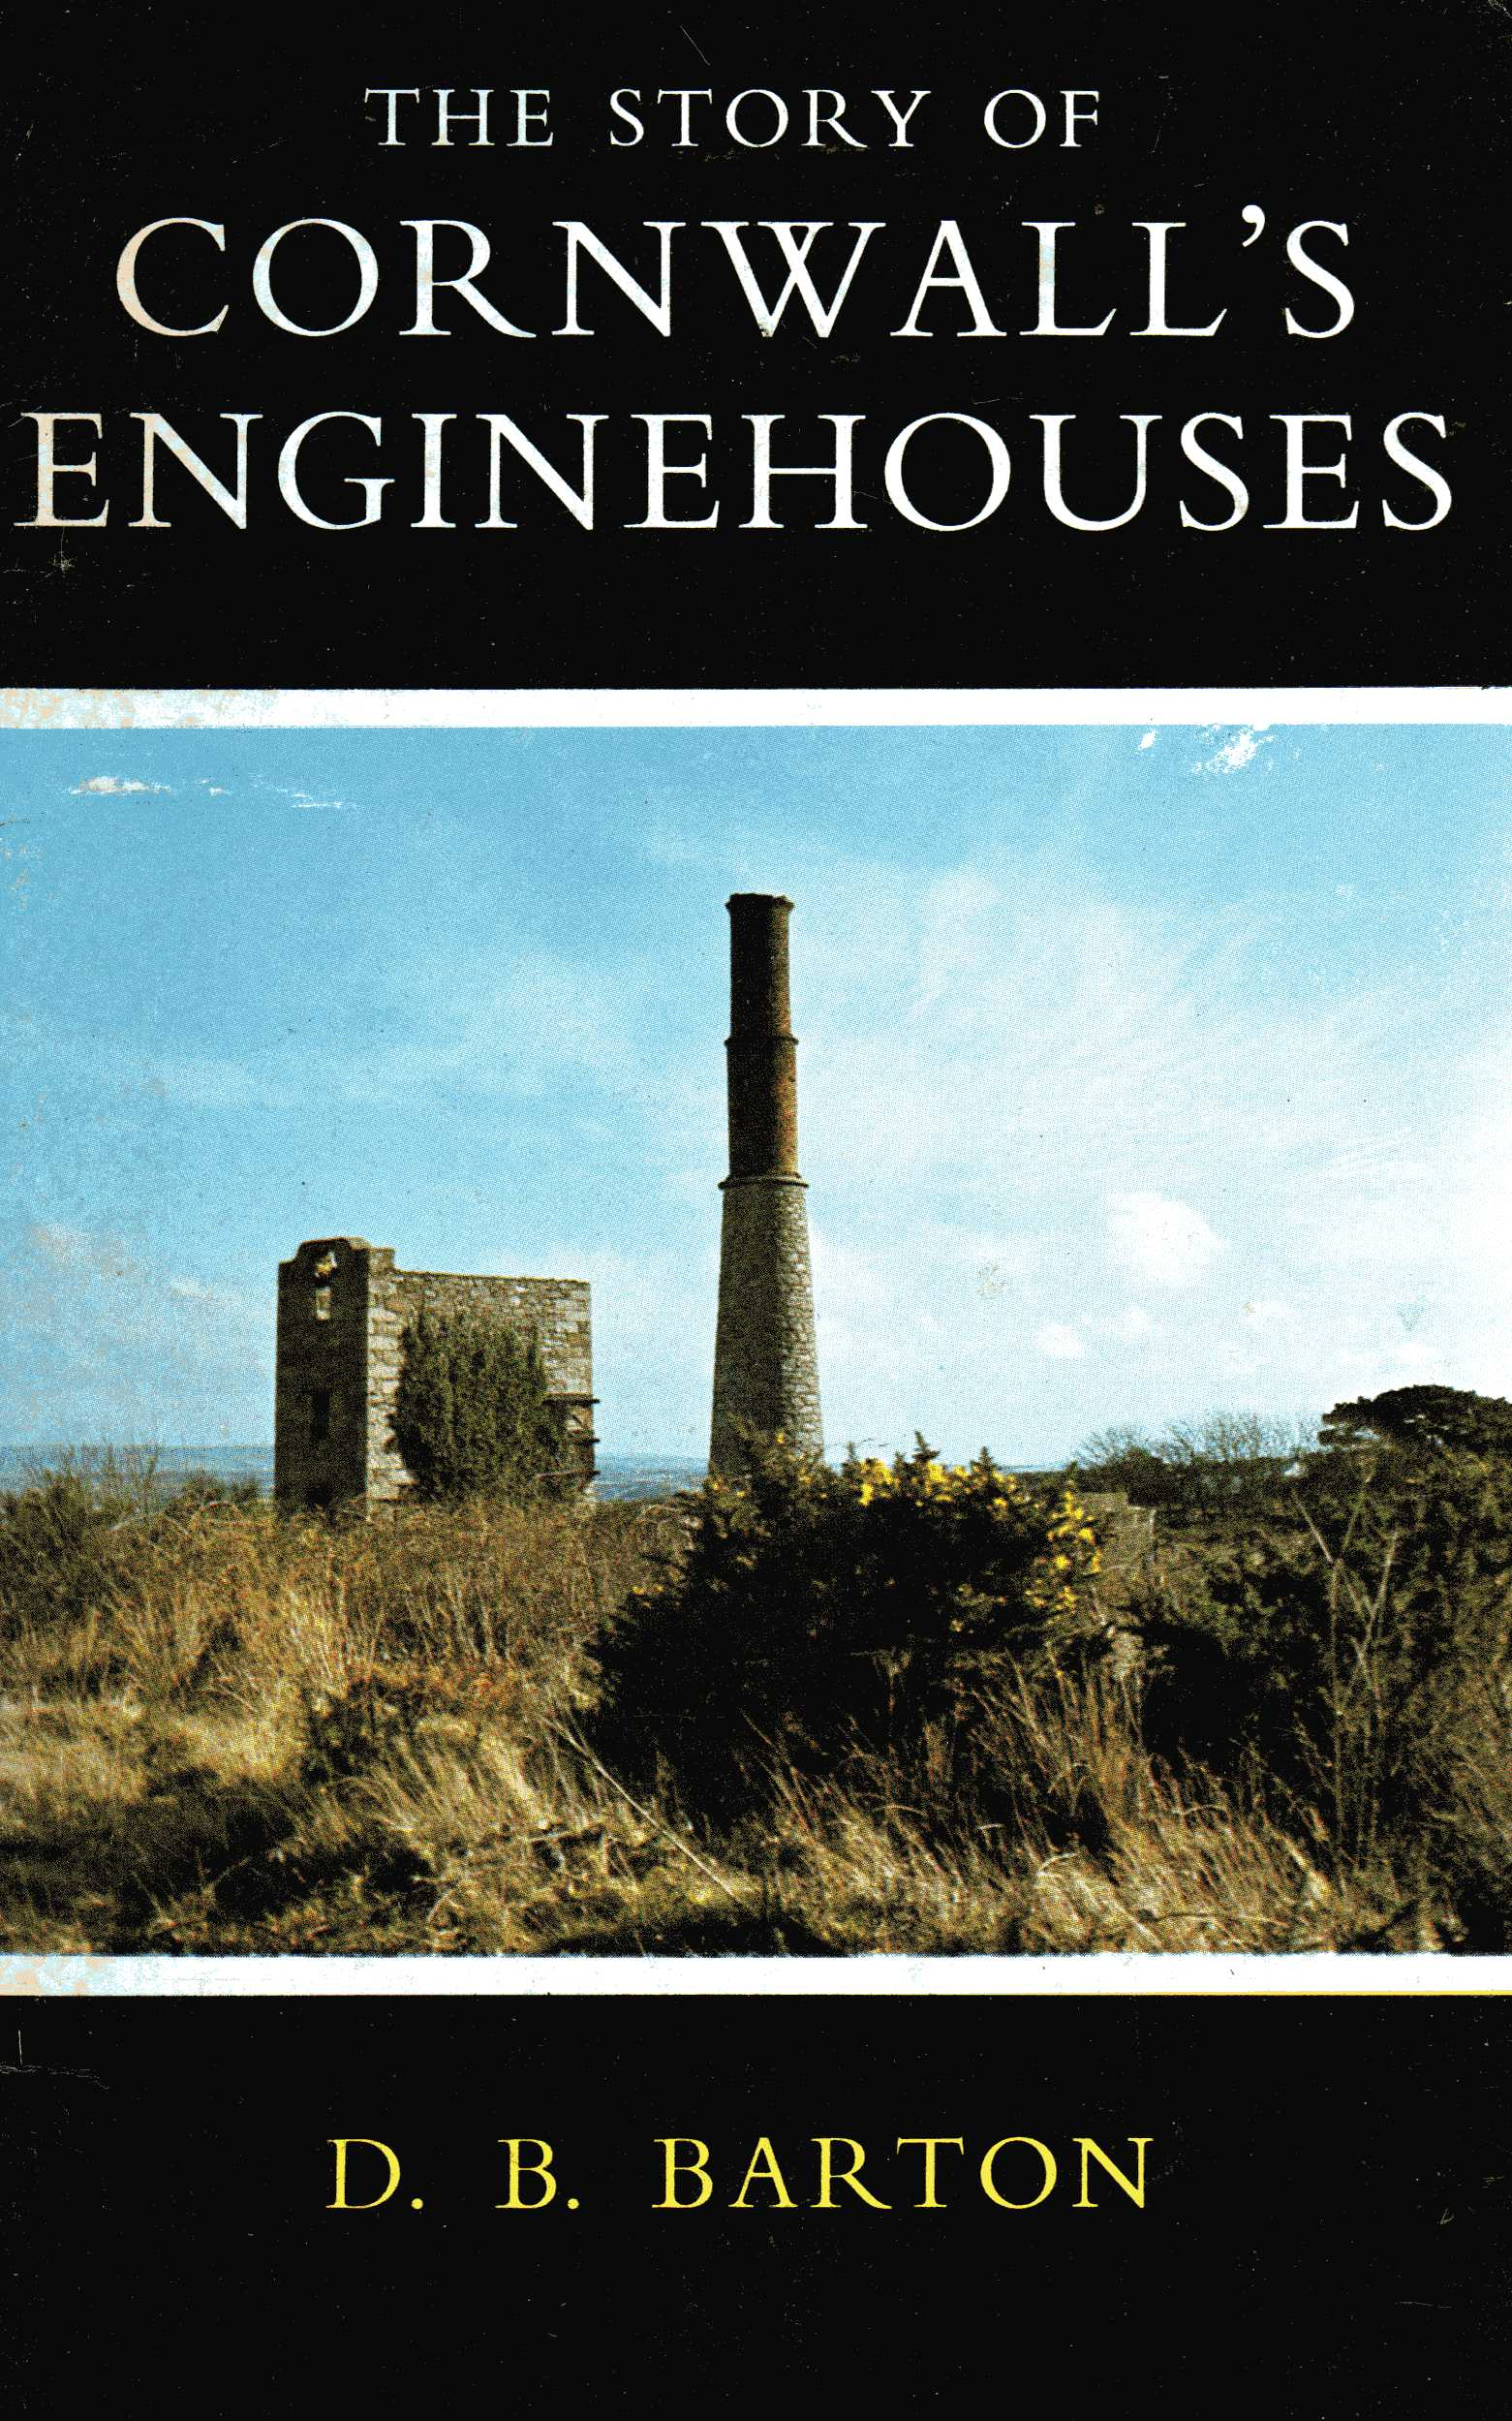 [USED] The Story of Cornwall's Old Engine Houses